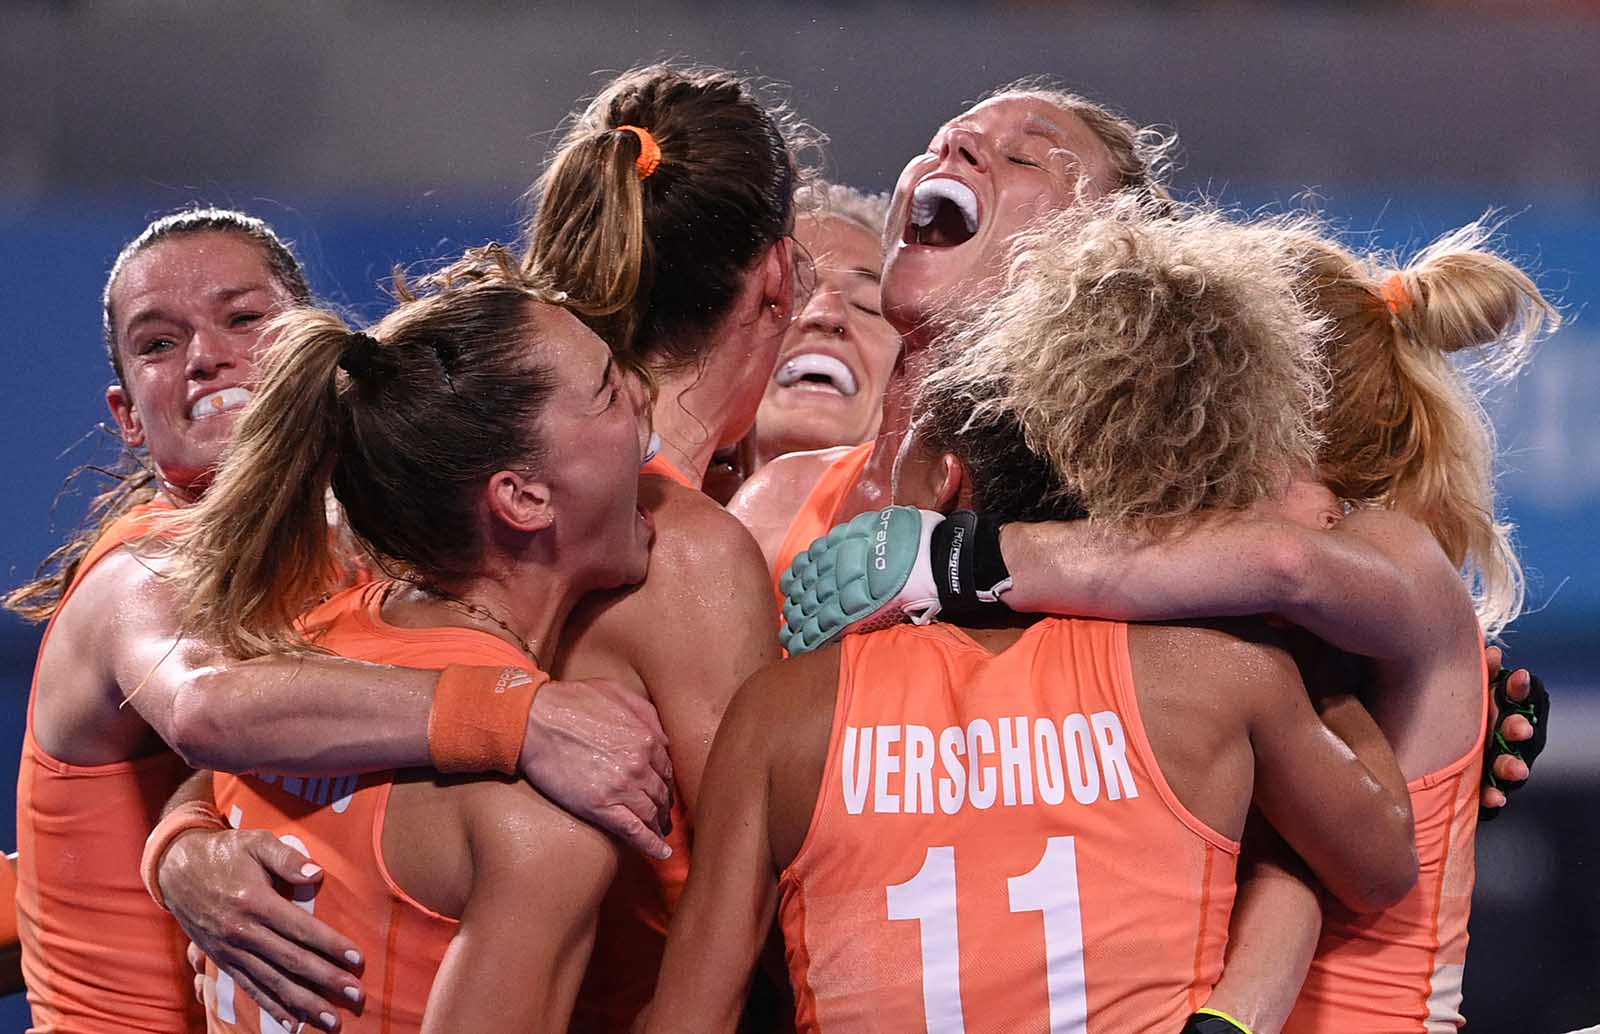 Caia Jacqueline Van Maasakker of the Netherlands, third from right, celebrates with teammates after scoring against Argentina during the women's gold medal field hockey match on August 6.